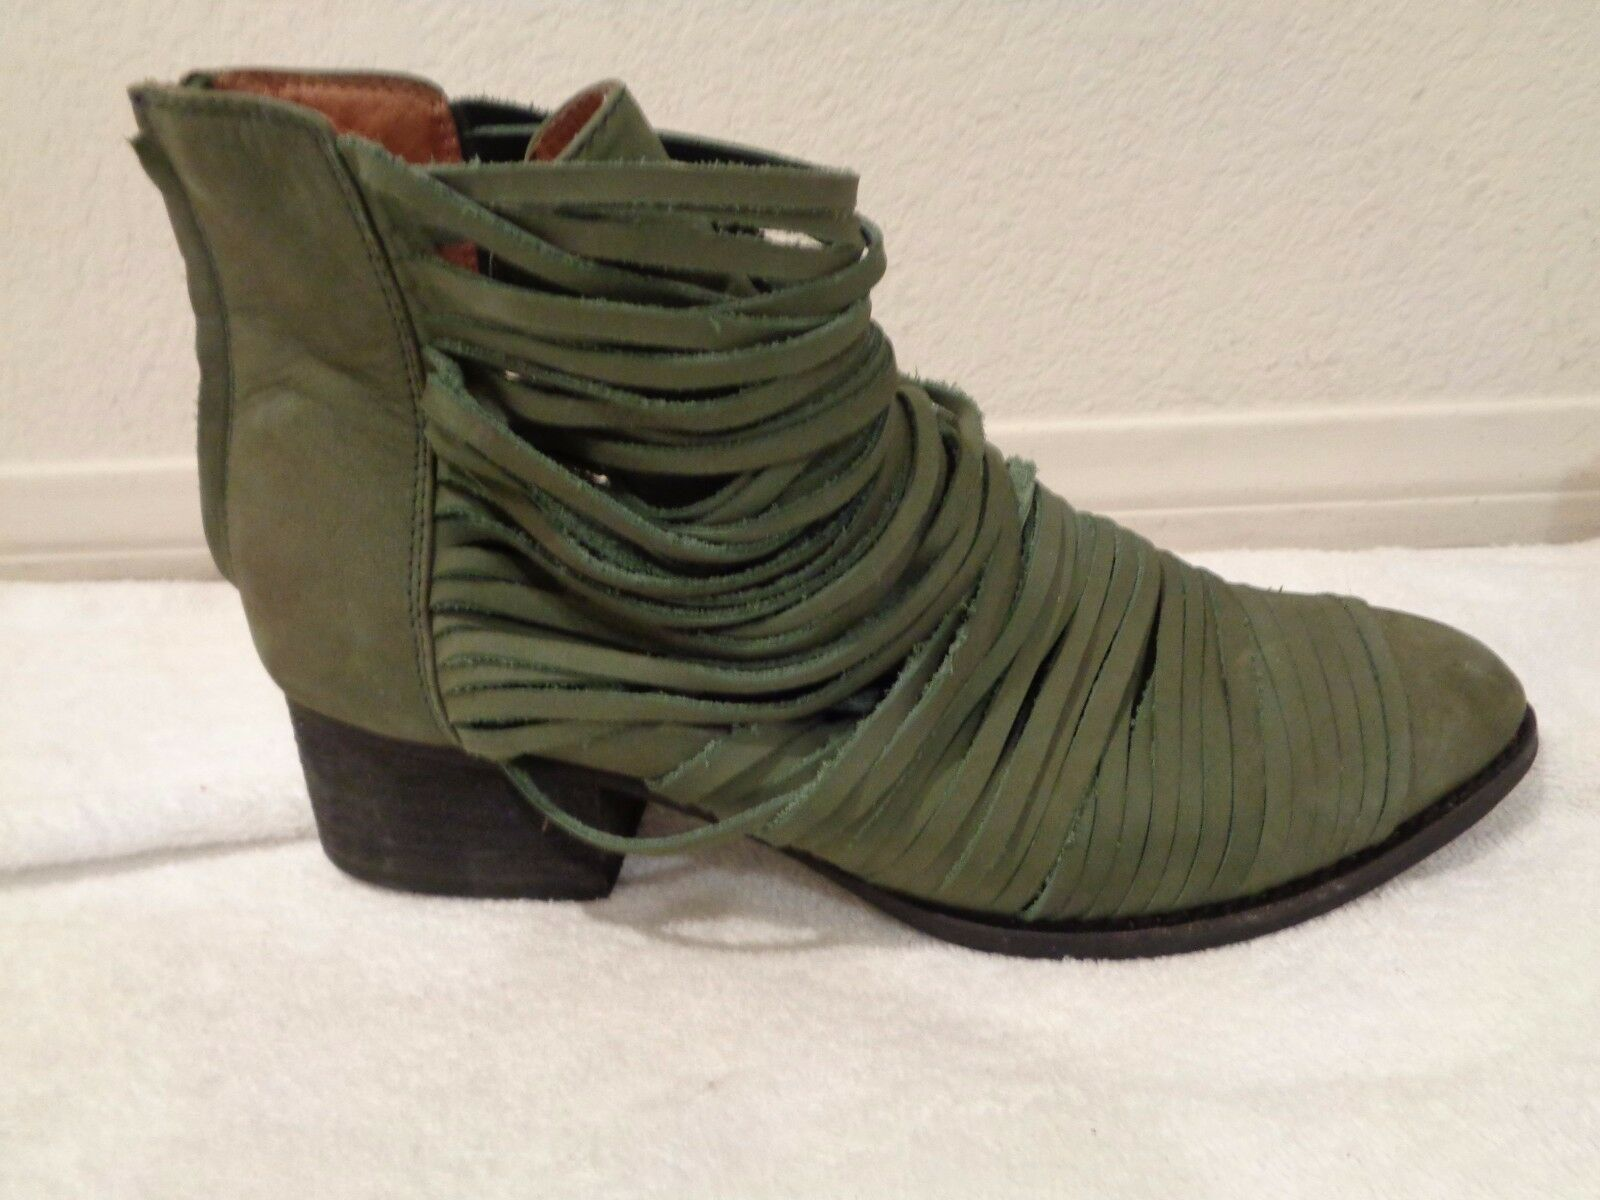 Jeffrey Campbell for Free People Hybrid Strappy Leather avvioie Olive SZ 9